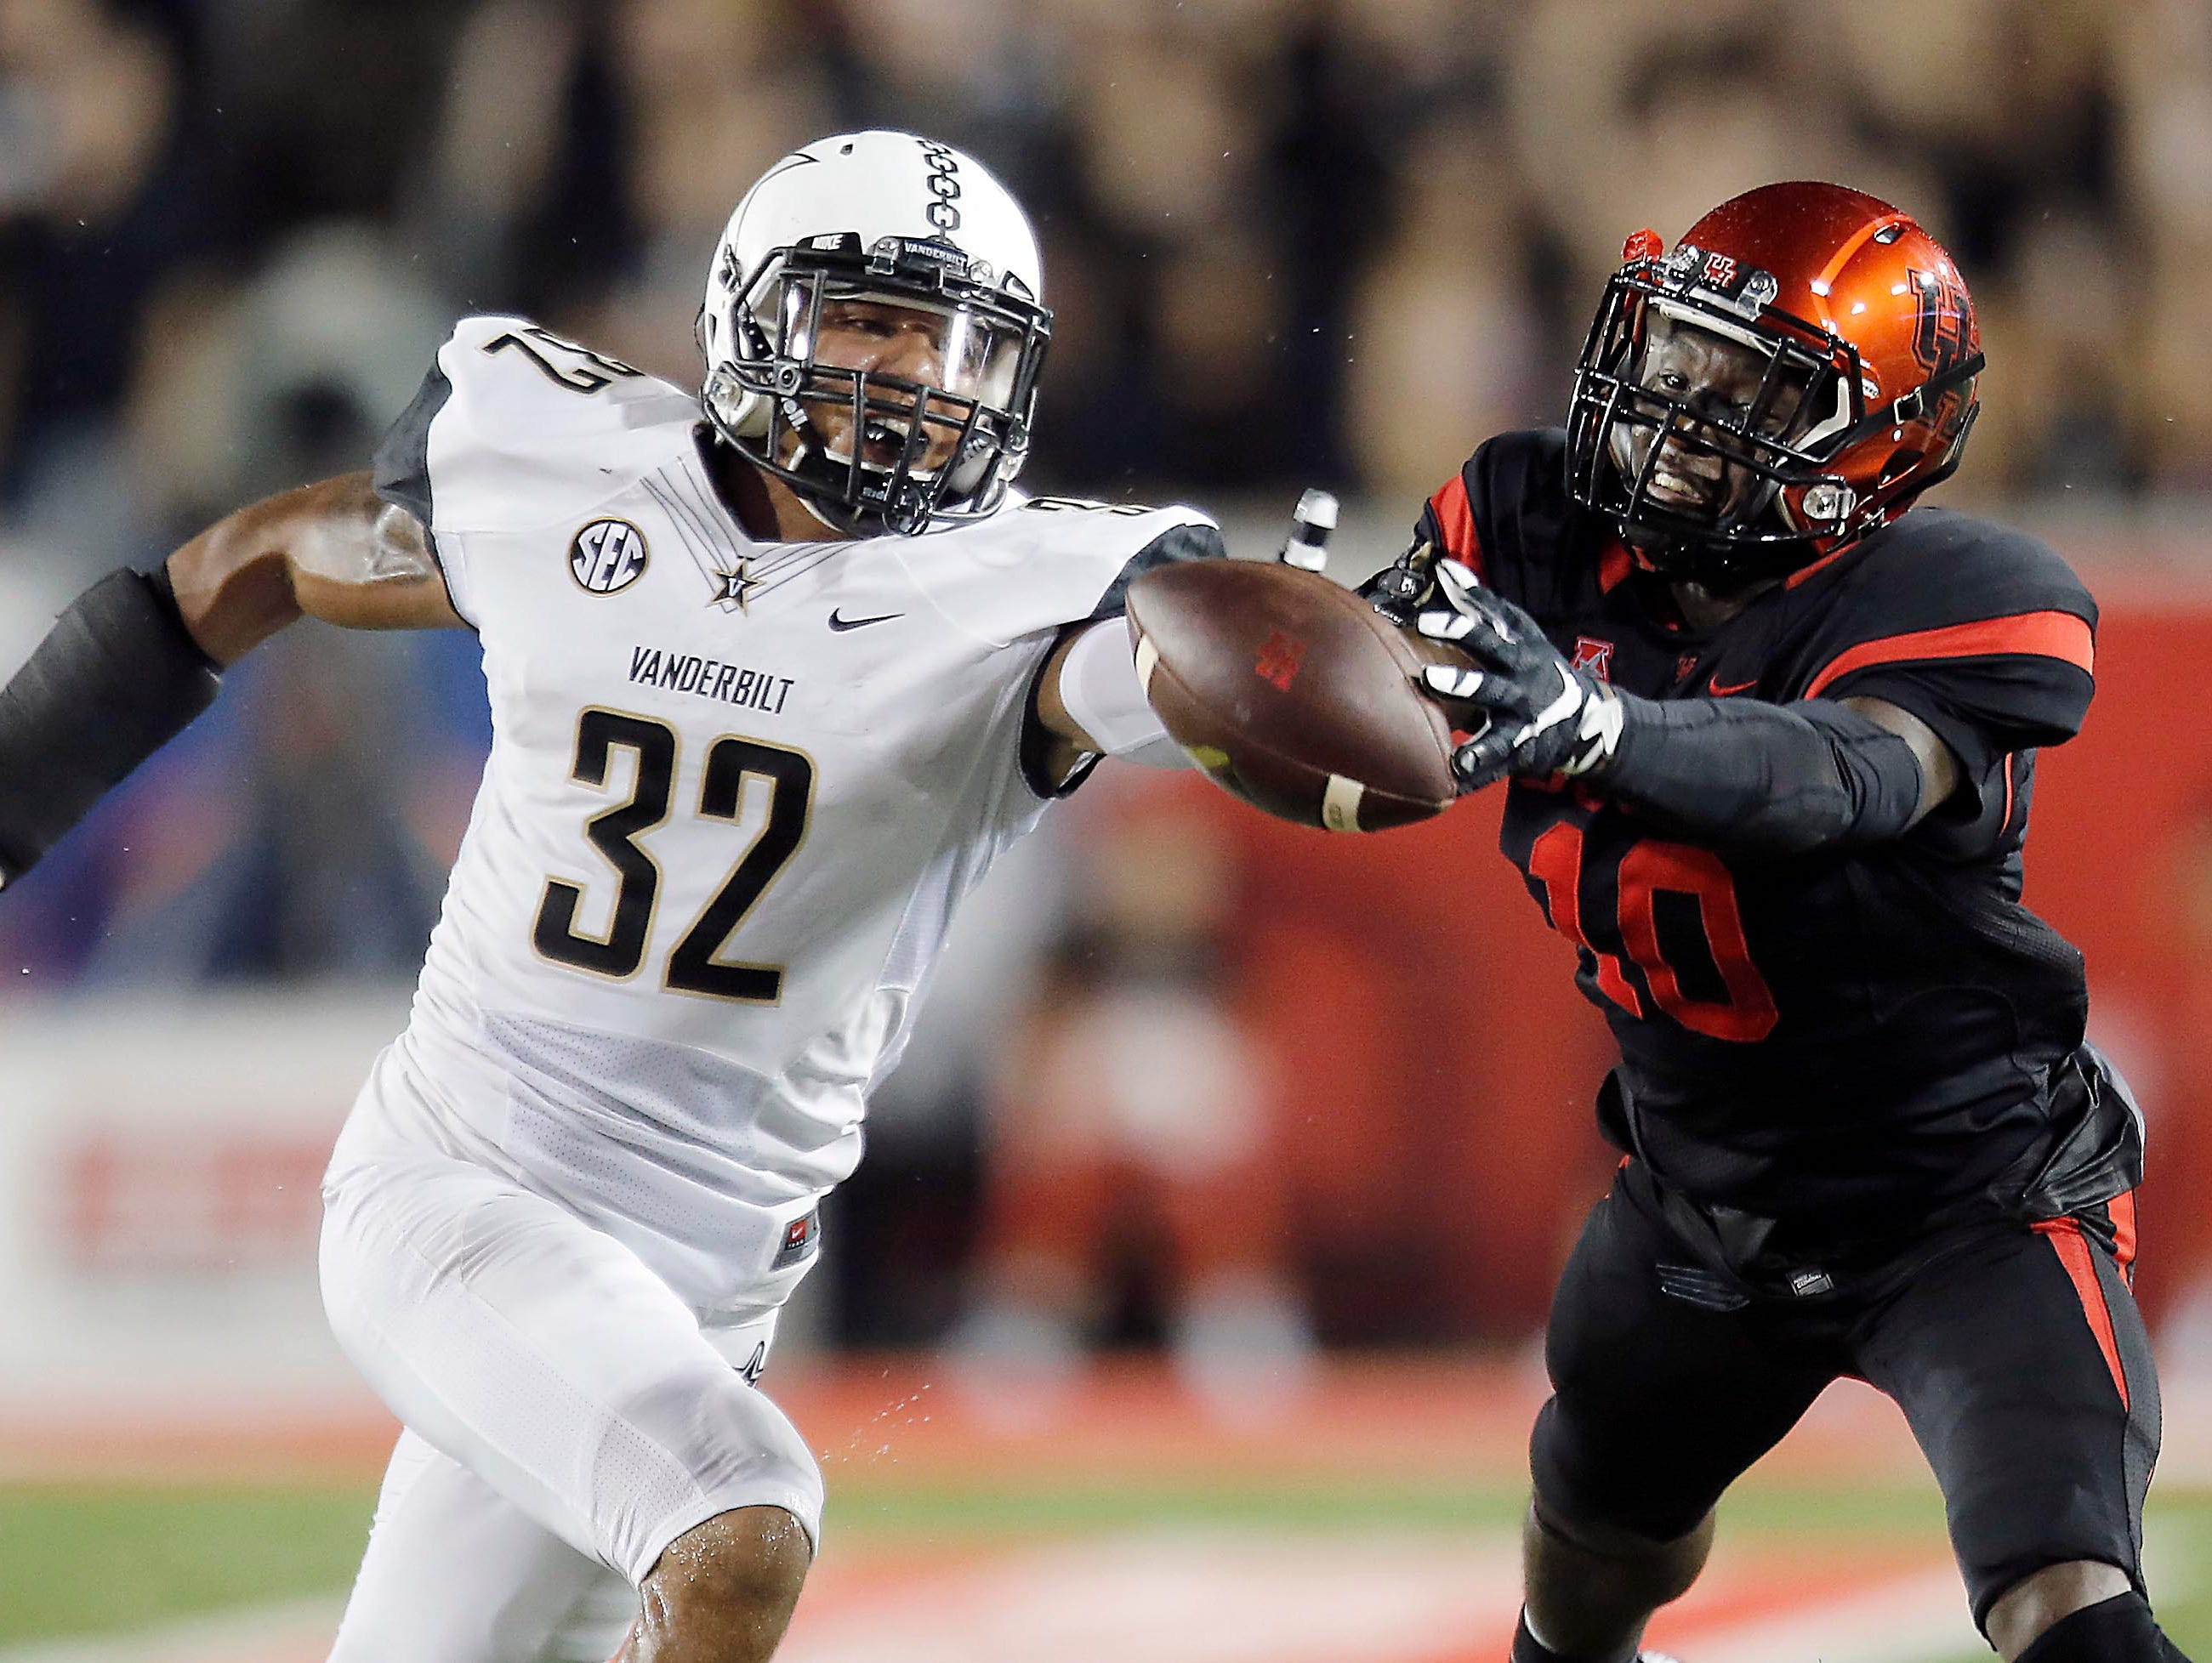 Vanderbilt safety Andrew Williamson (32) breaks up a a pass intended for Houston wide receiver Demarcus Ayers (10) in the first quarter on Oct. 31, 2015.